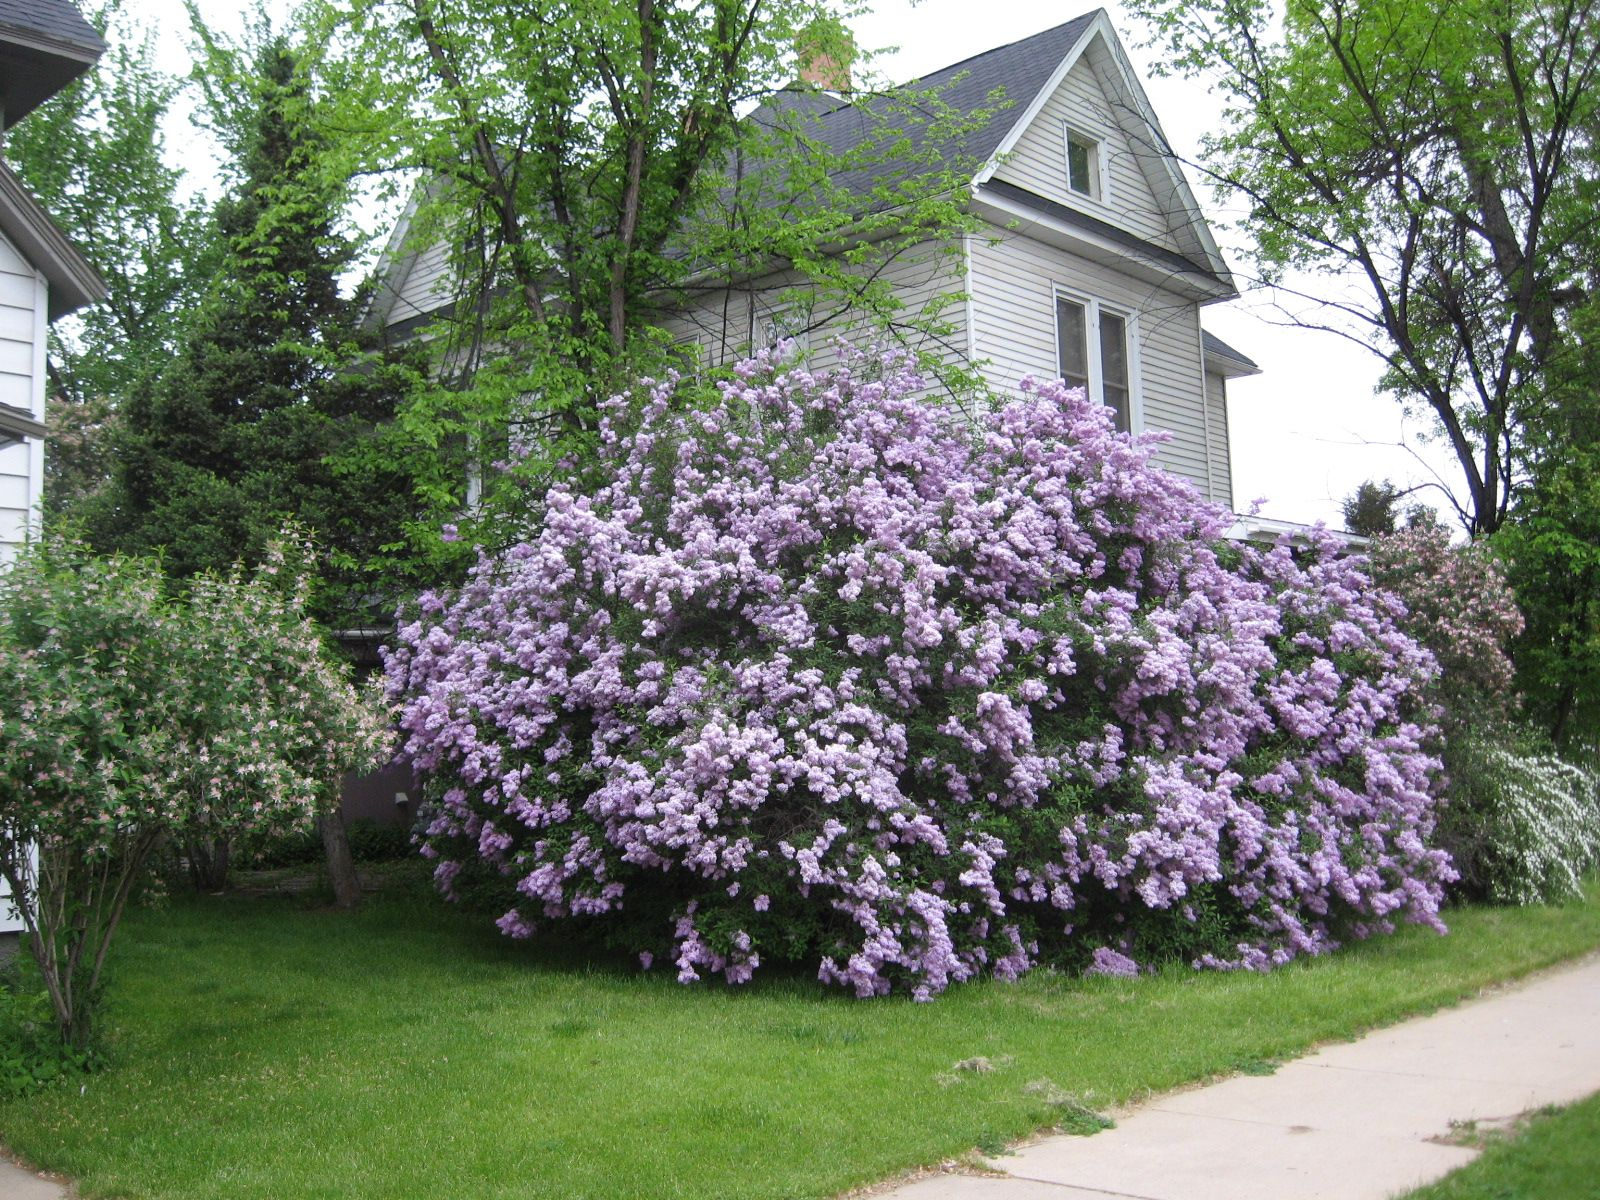 Pinecones And Roses Lilac Time Lilac Tree Lilac Bushes Garden Inspiration